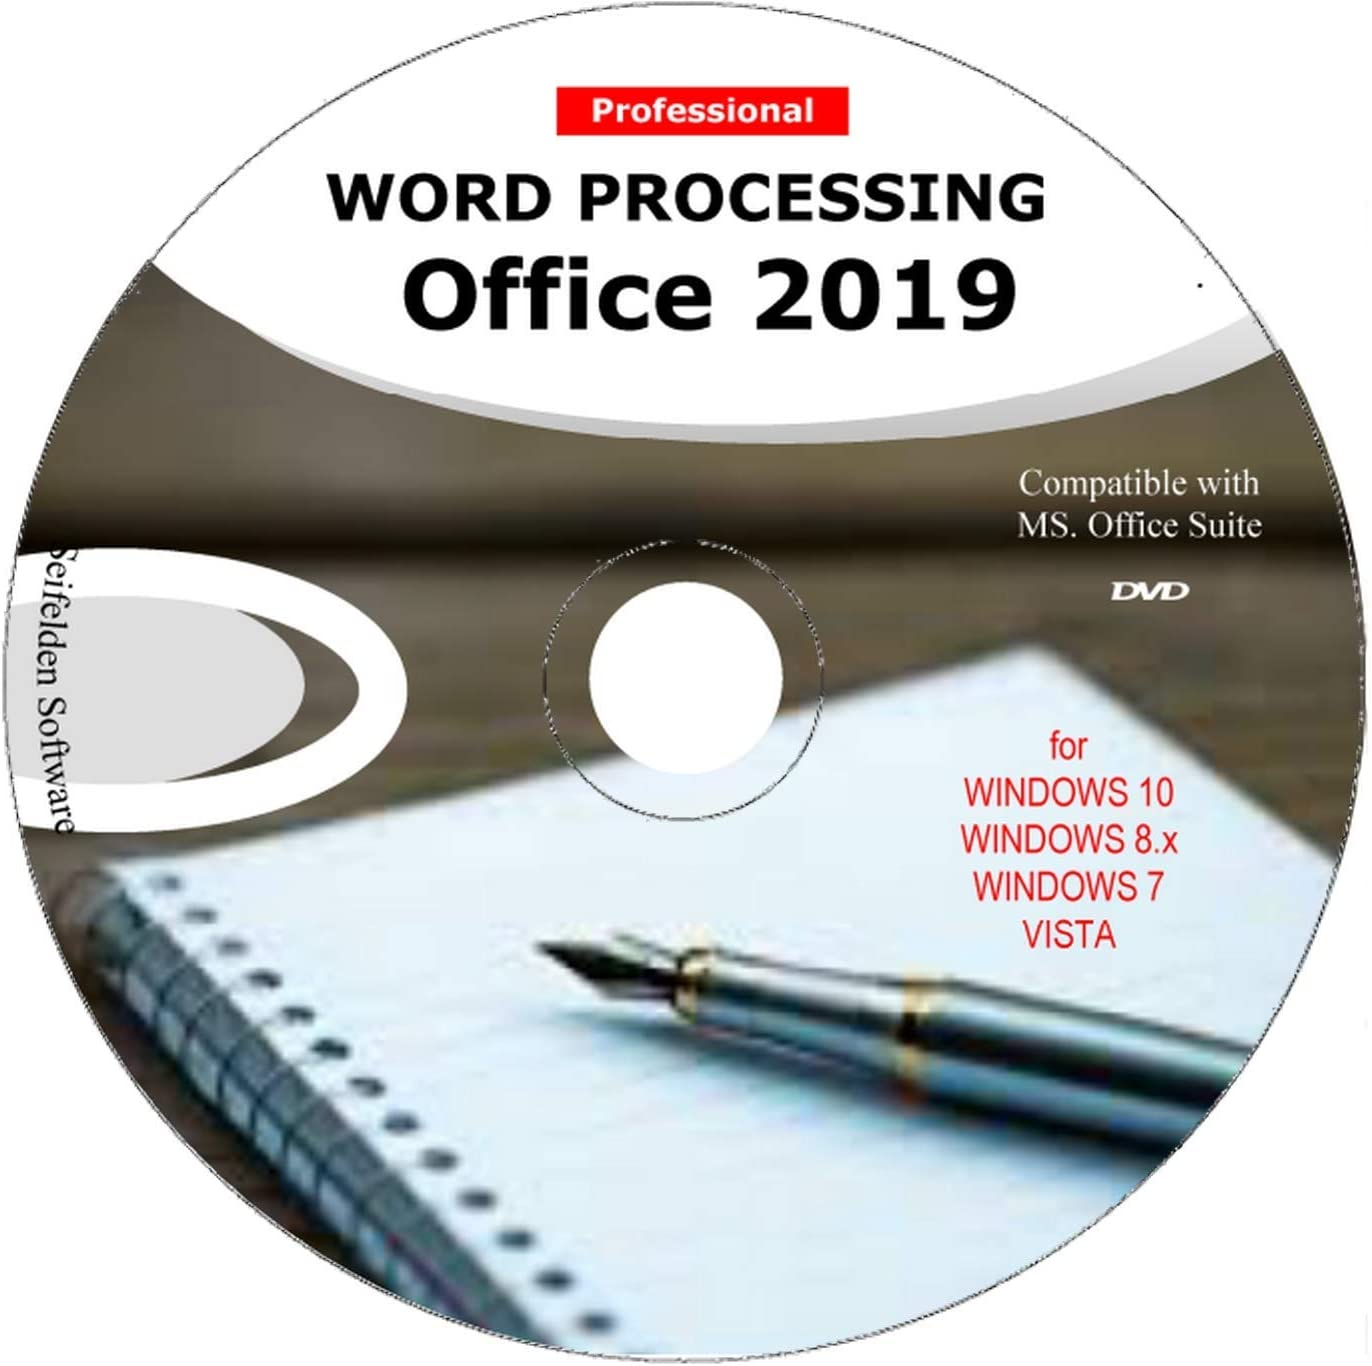 Word Processing Office Suite 2019 Perfect Home Student and Business for Windows 10 8.1 8 7 Vista XP 32 64bit| Alternative to Microsoft™️ Office 2016 2013 2010 365 Compatible Word Excel PowerPoint⭐⭐⭐⭐⭐